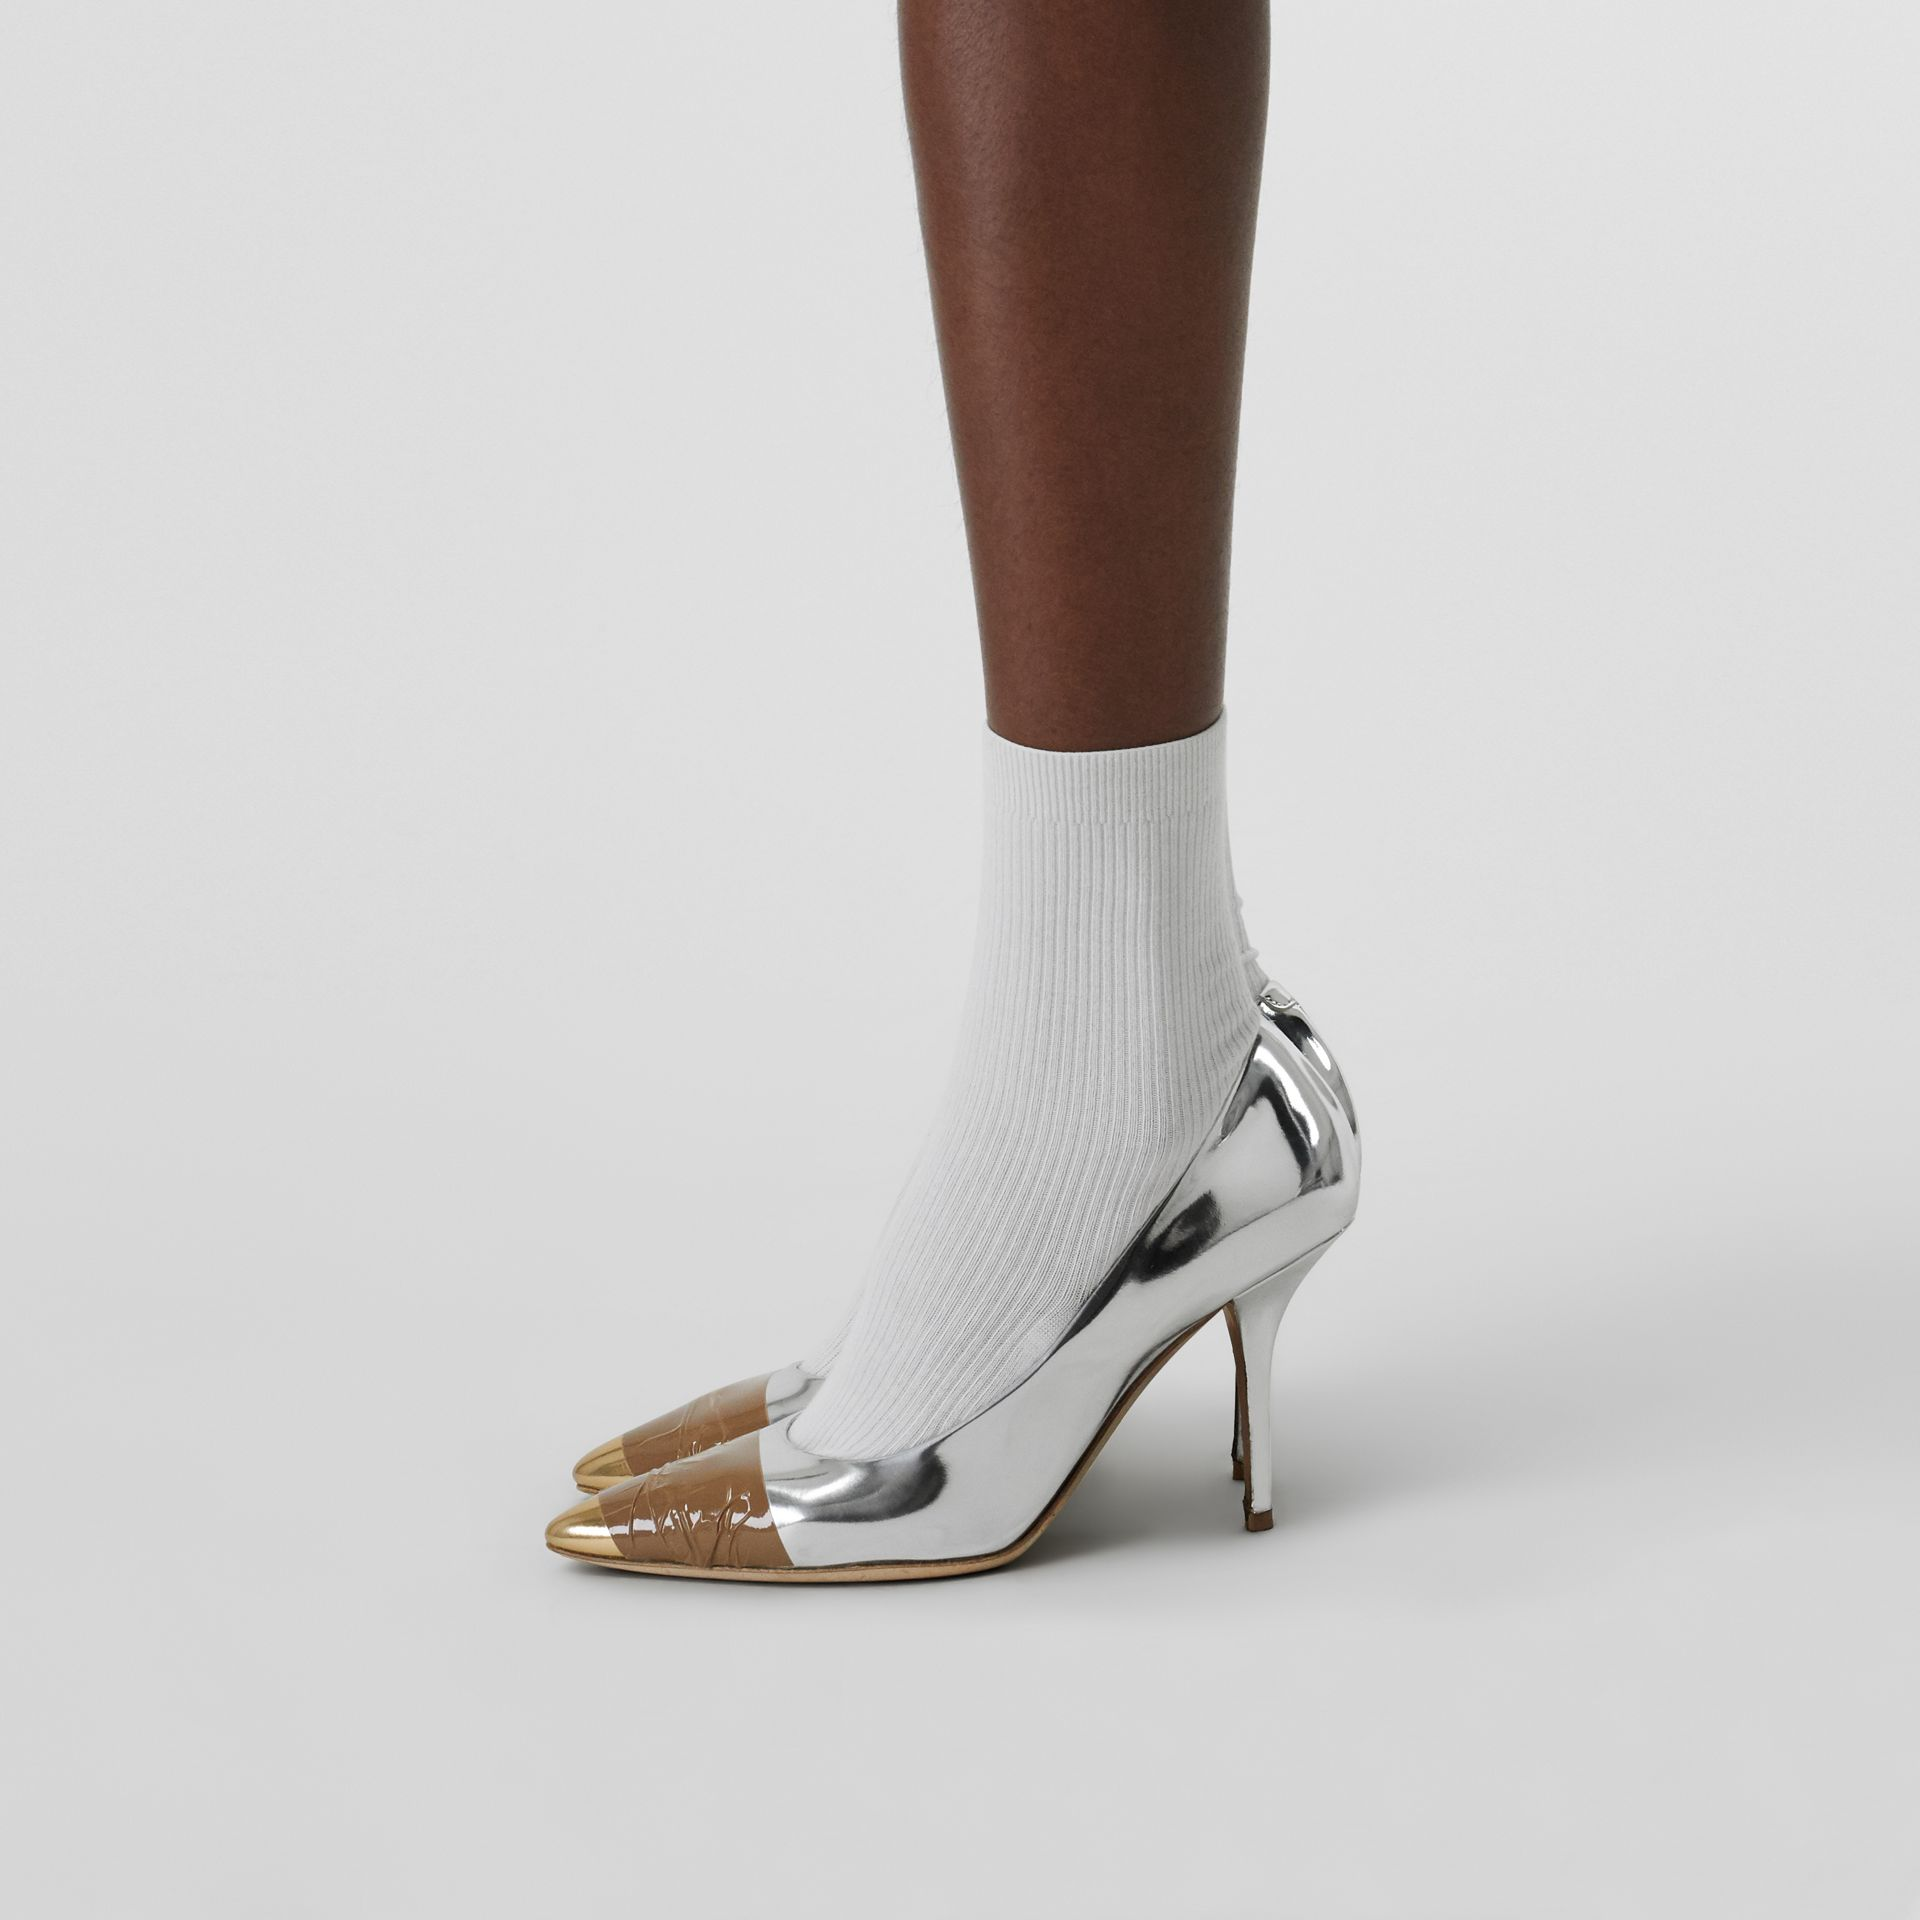 Tape Detail Mirrored Leather Pumps in Silver/gold - Women | Burberry - gallery image 2